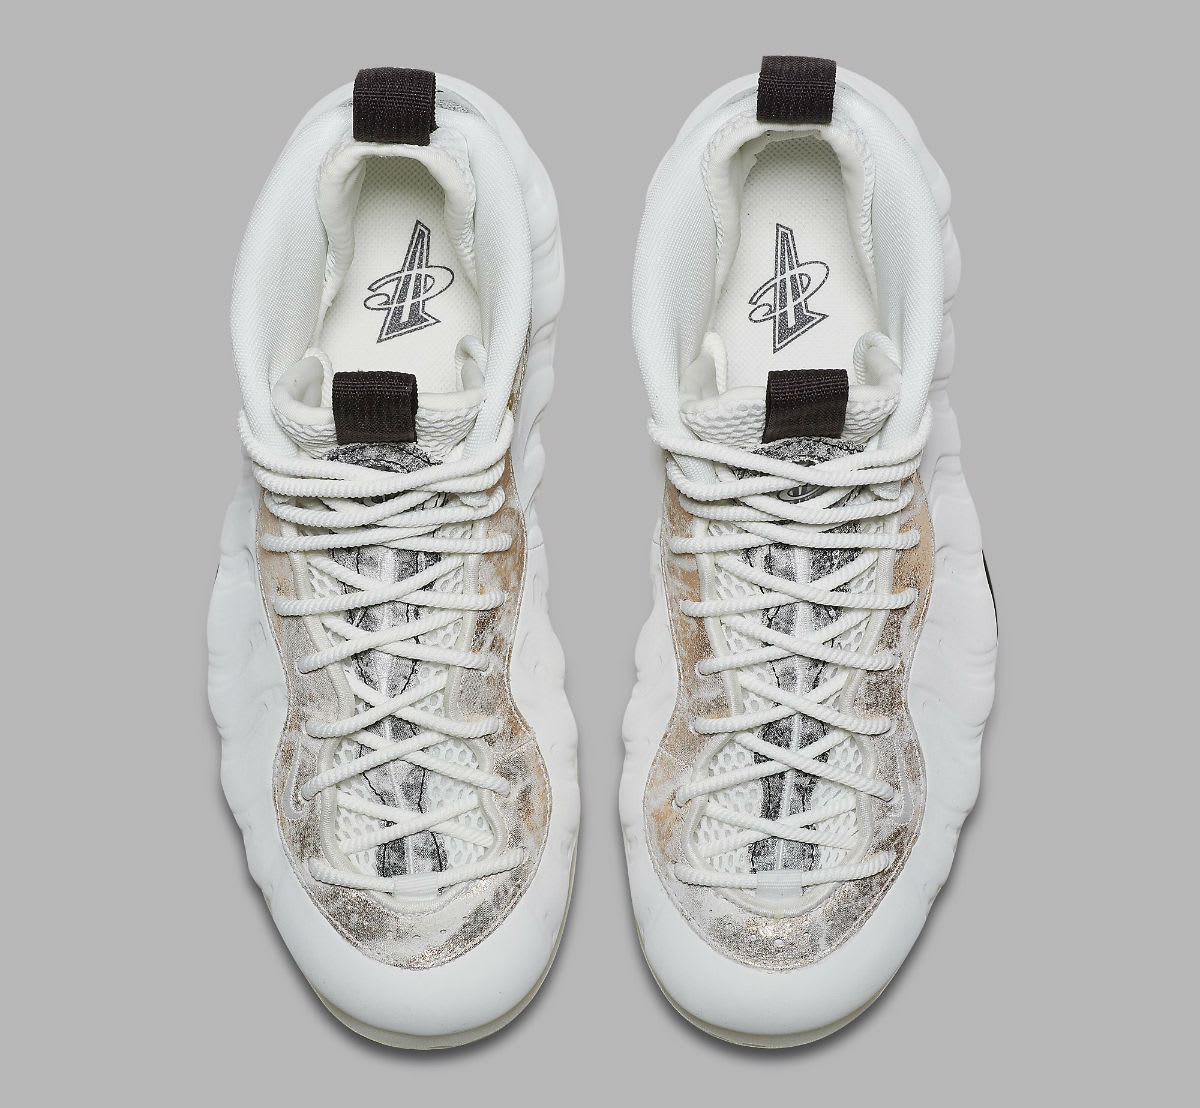 f1eeeb2e6c0 Image via Nike Nike Air Foamposite One Women s Summit White Oil Grey  Rainforest Release Date AA3963-101 Top